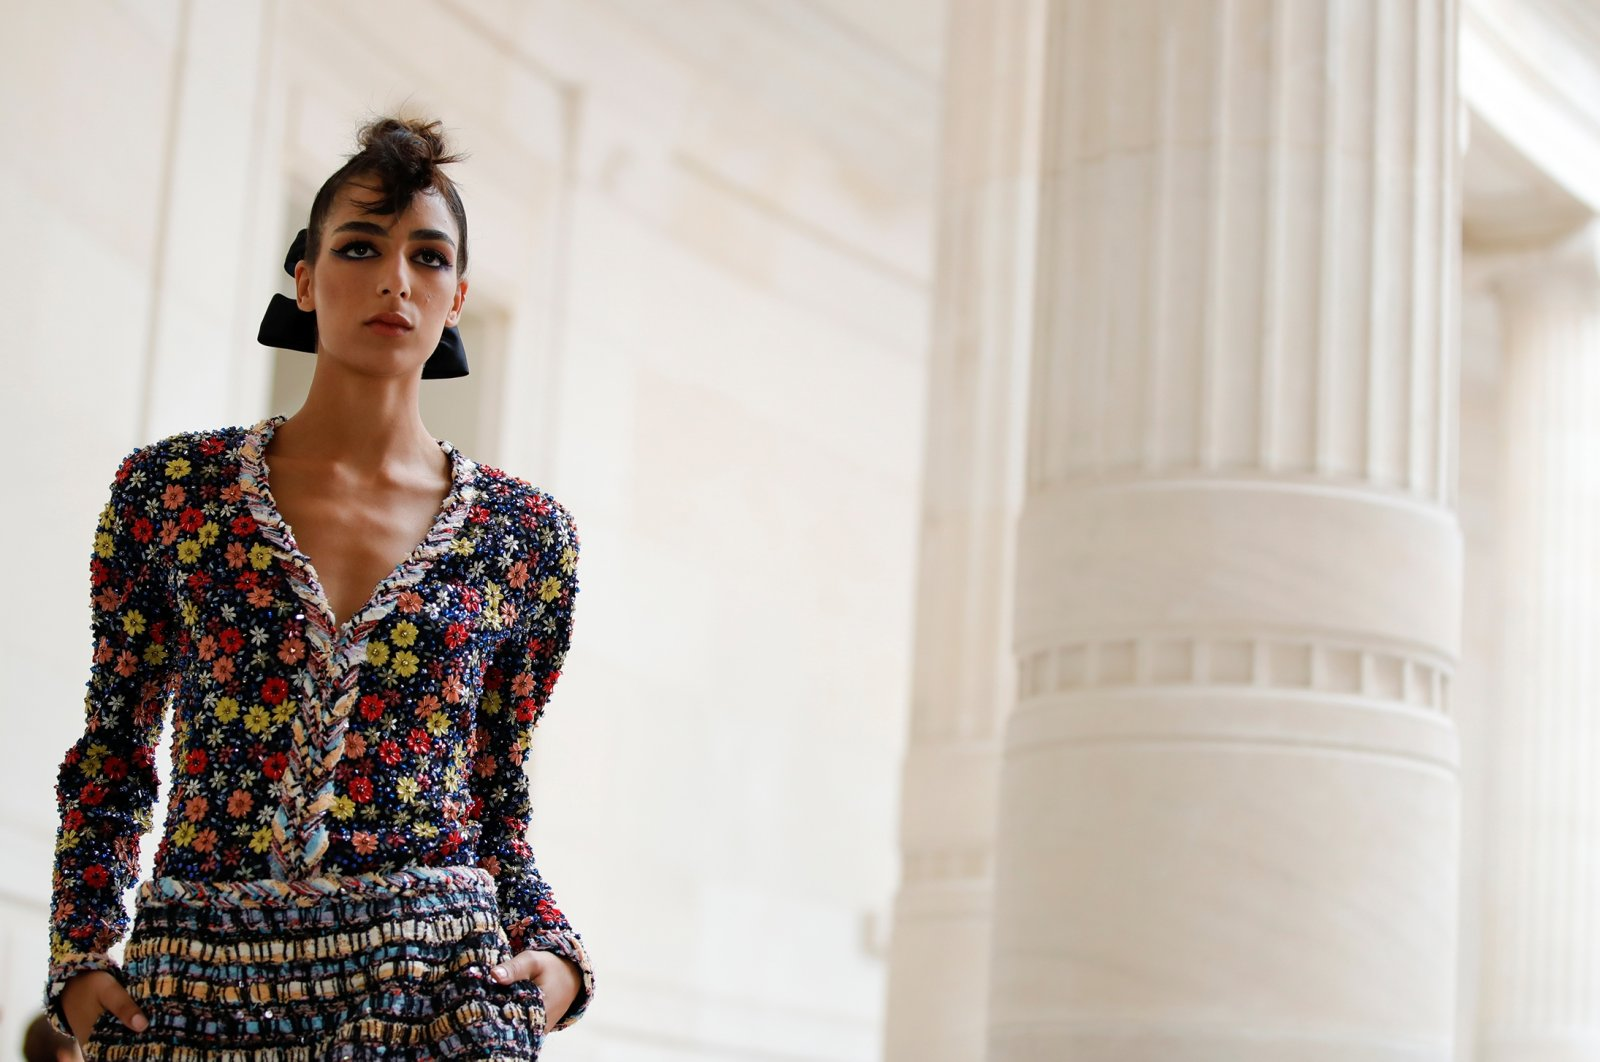 A model presents a creation by designer Virginie Viard as part of her Haute Couture Fall/Winter 2021/2022 collection for fashion house Chanel in Paris, France, July 6, 2021. (Reuters Photo)